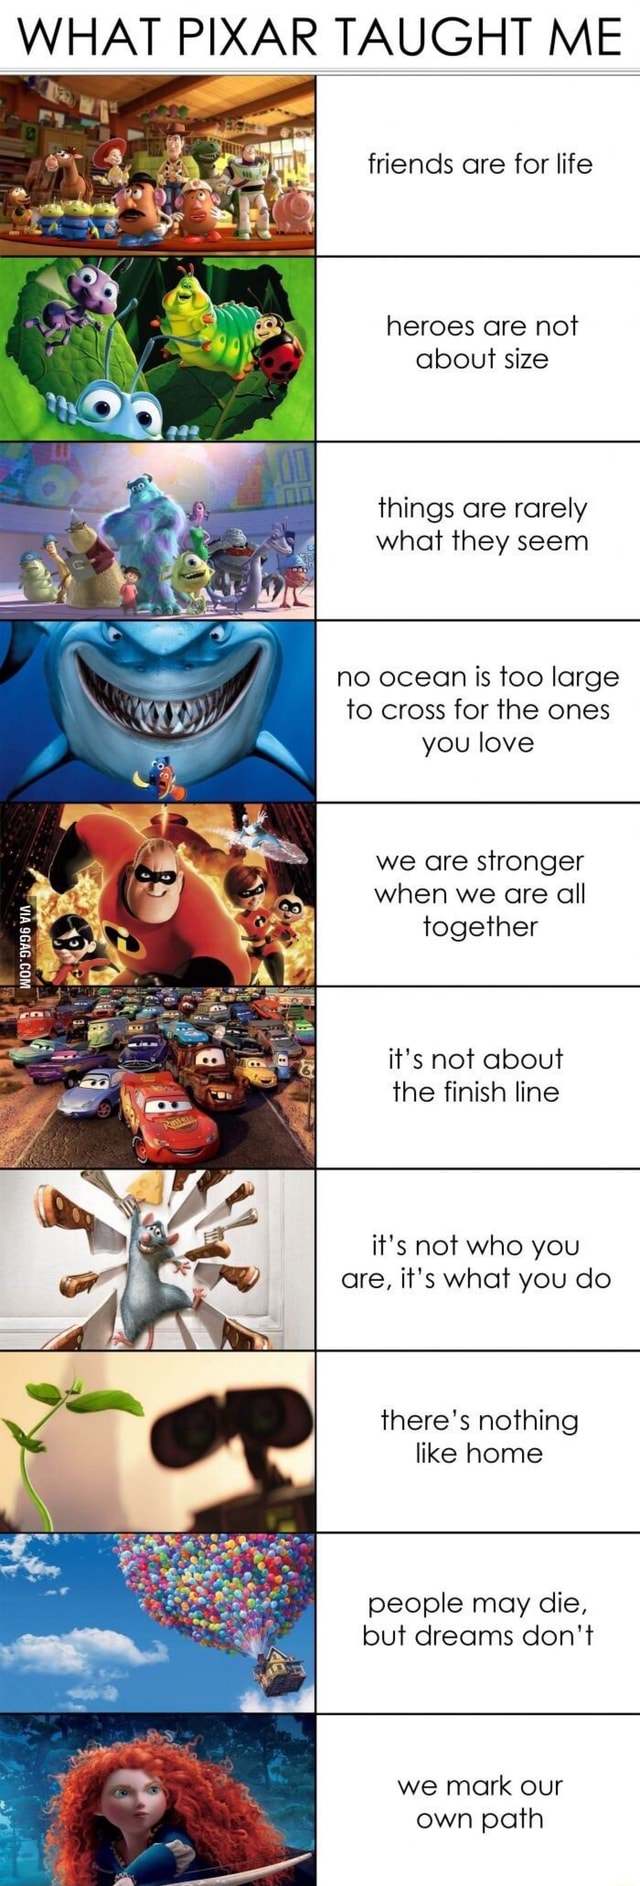 WHAT PIXAR TAUGHT ME friends are for life heroes are not about size things are rarely what they seem no ocean is too large to cross for the ones you love Cad we are stronger when we are all together it's not about the finish line it's not who you are, it's what you do BS there's nothing like home people may die, but dreams do not we mark our own path meme